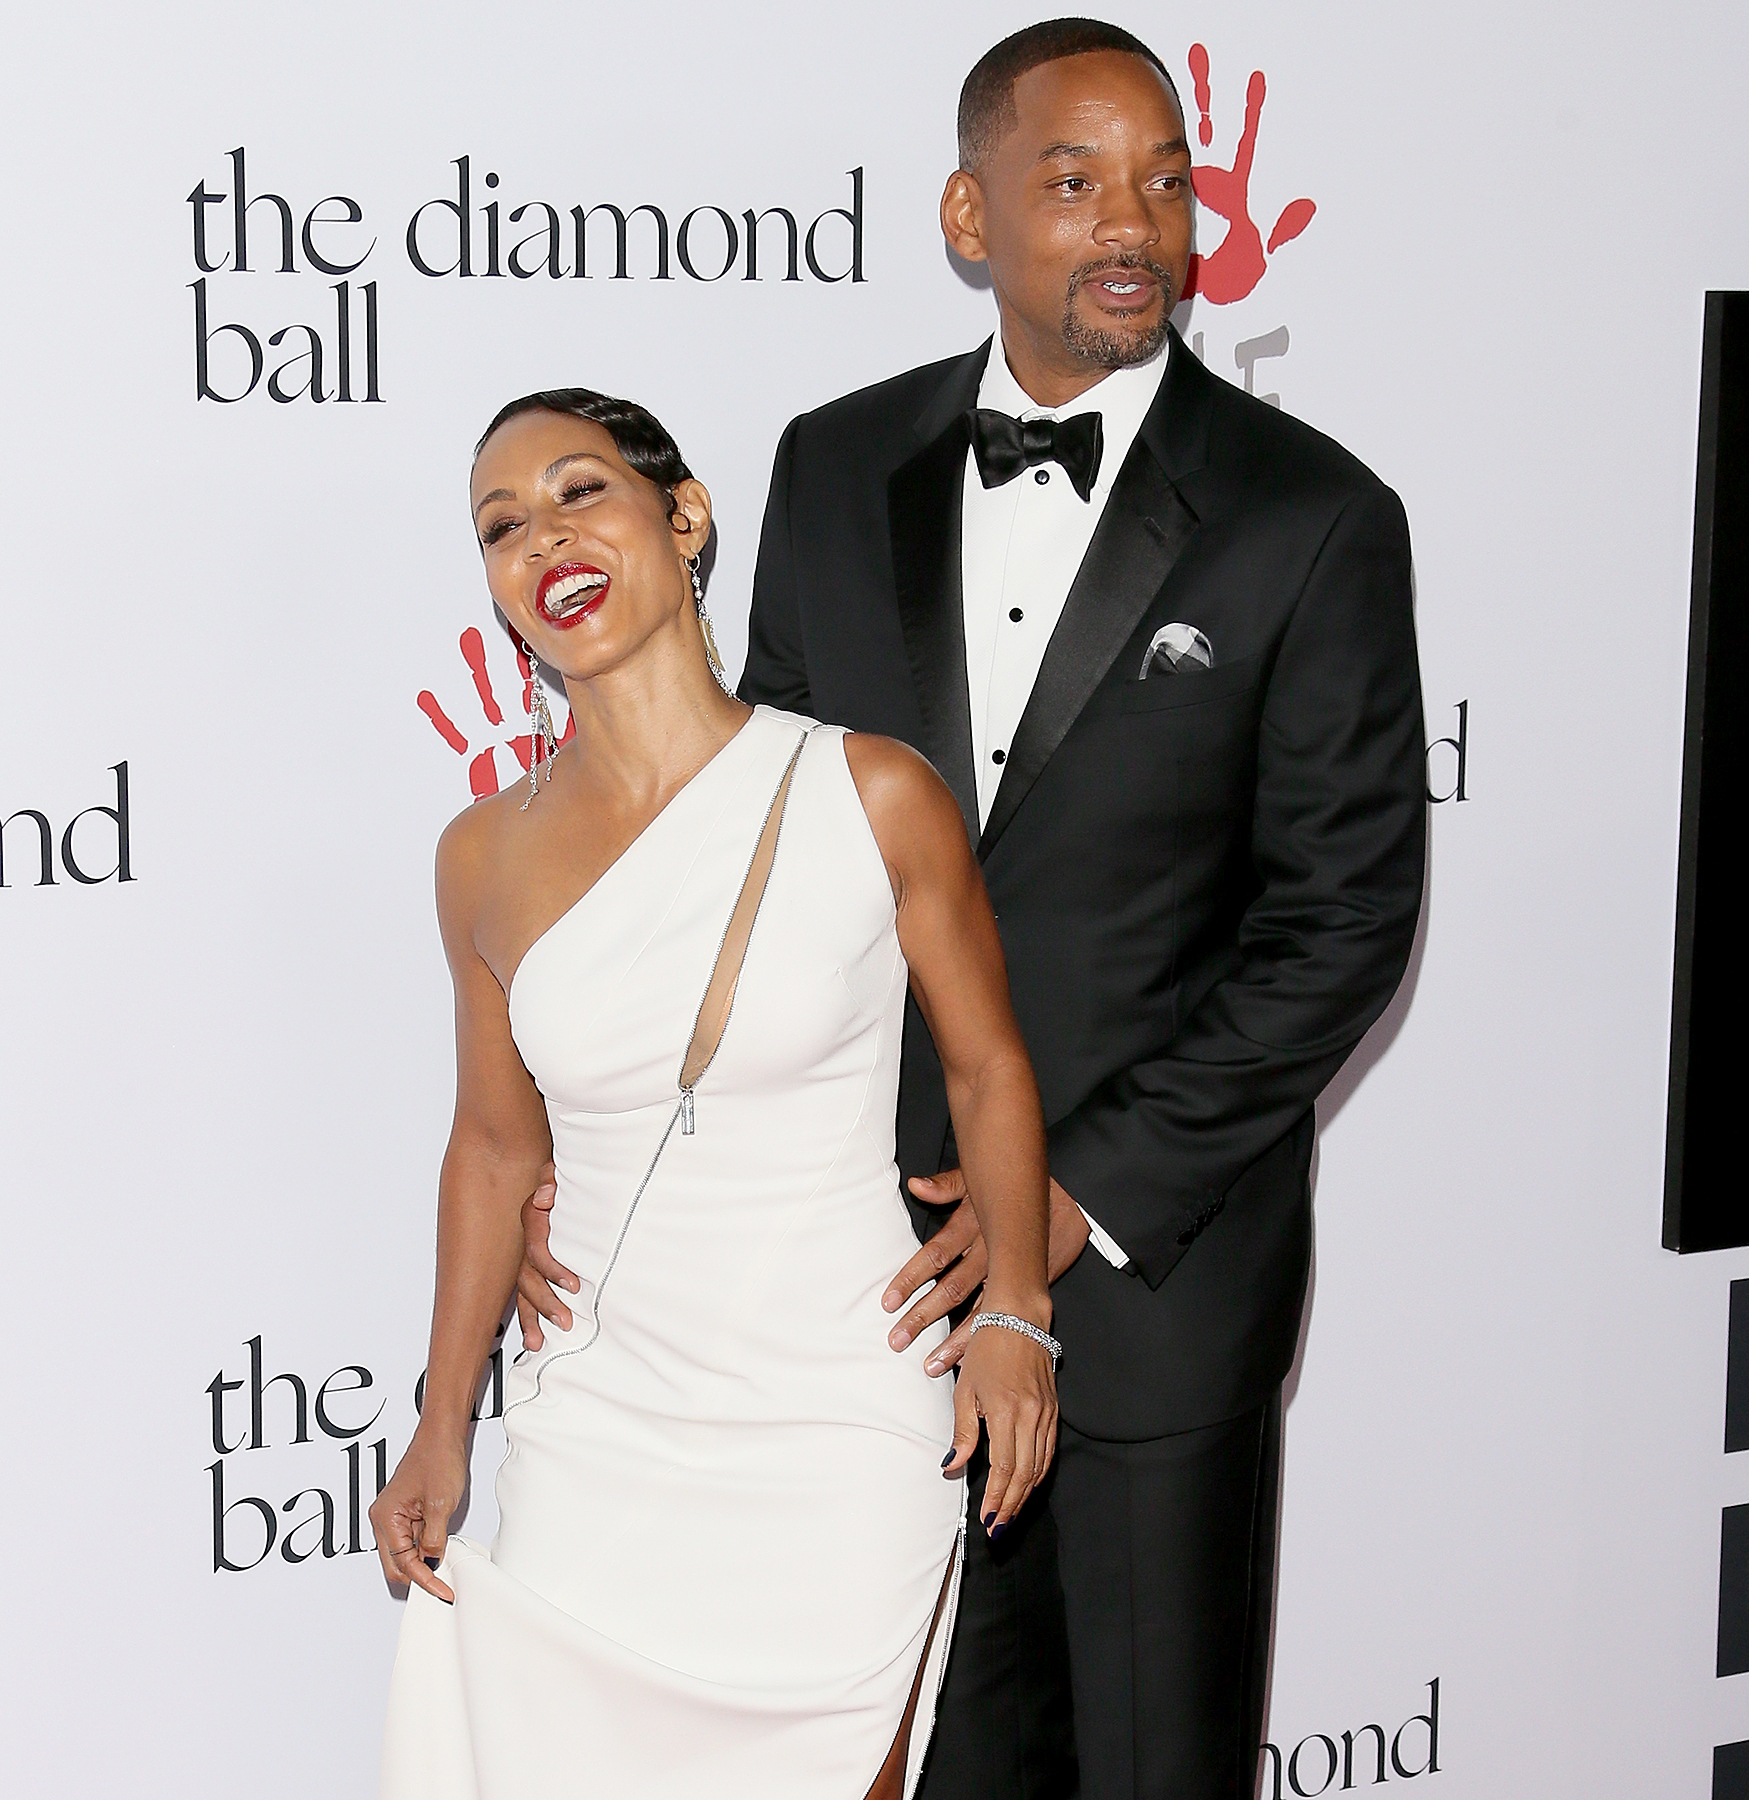 Jada Pinkett Smith and Will Smith attend the 2nd Annual Diamond Ball hosted by Rihanna and the Clara Lionel Foundation at The Barker Hanger on Dec. 10.